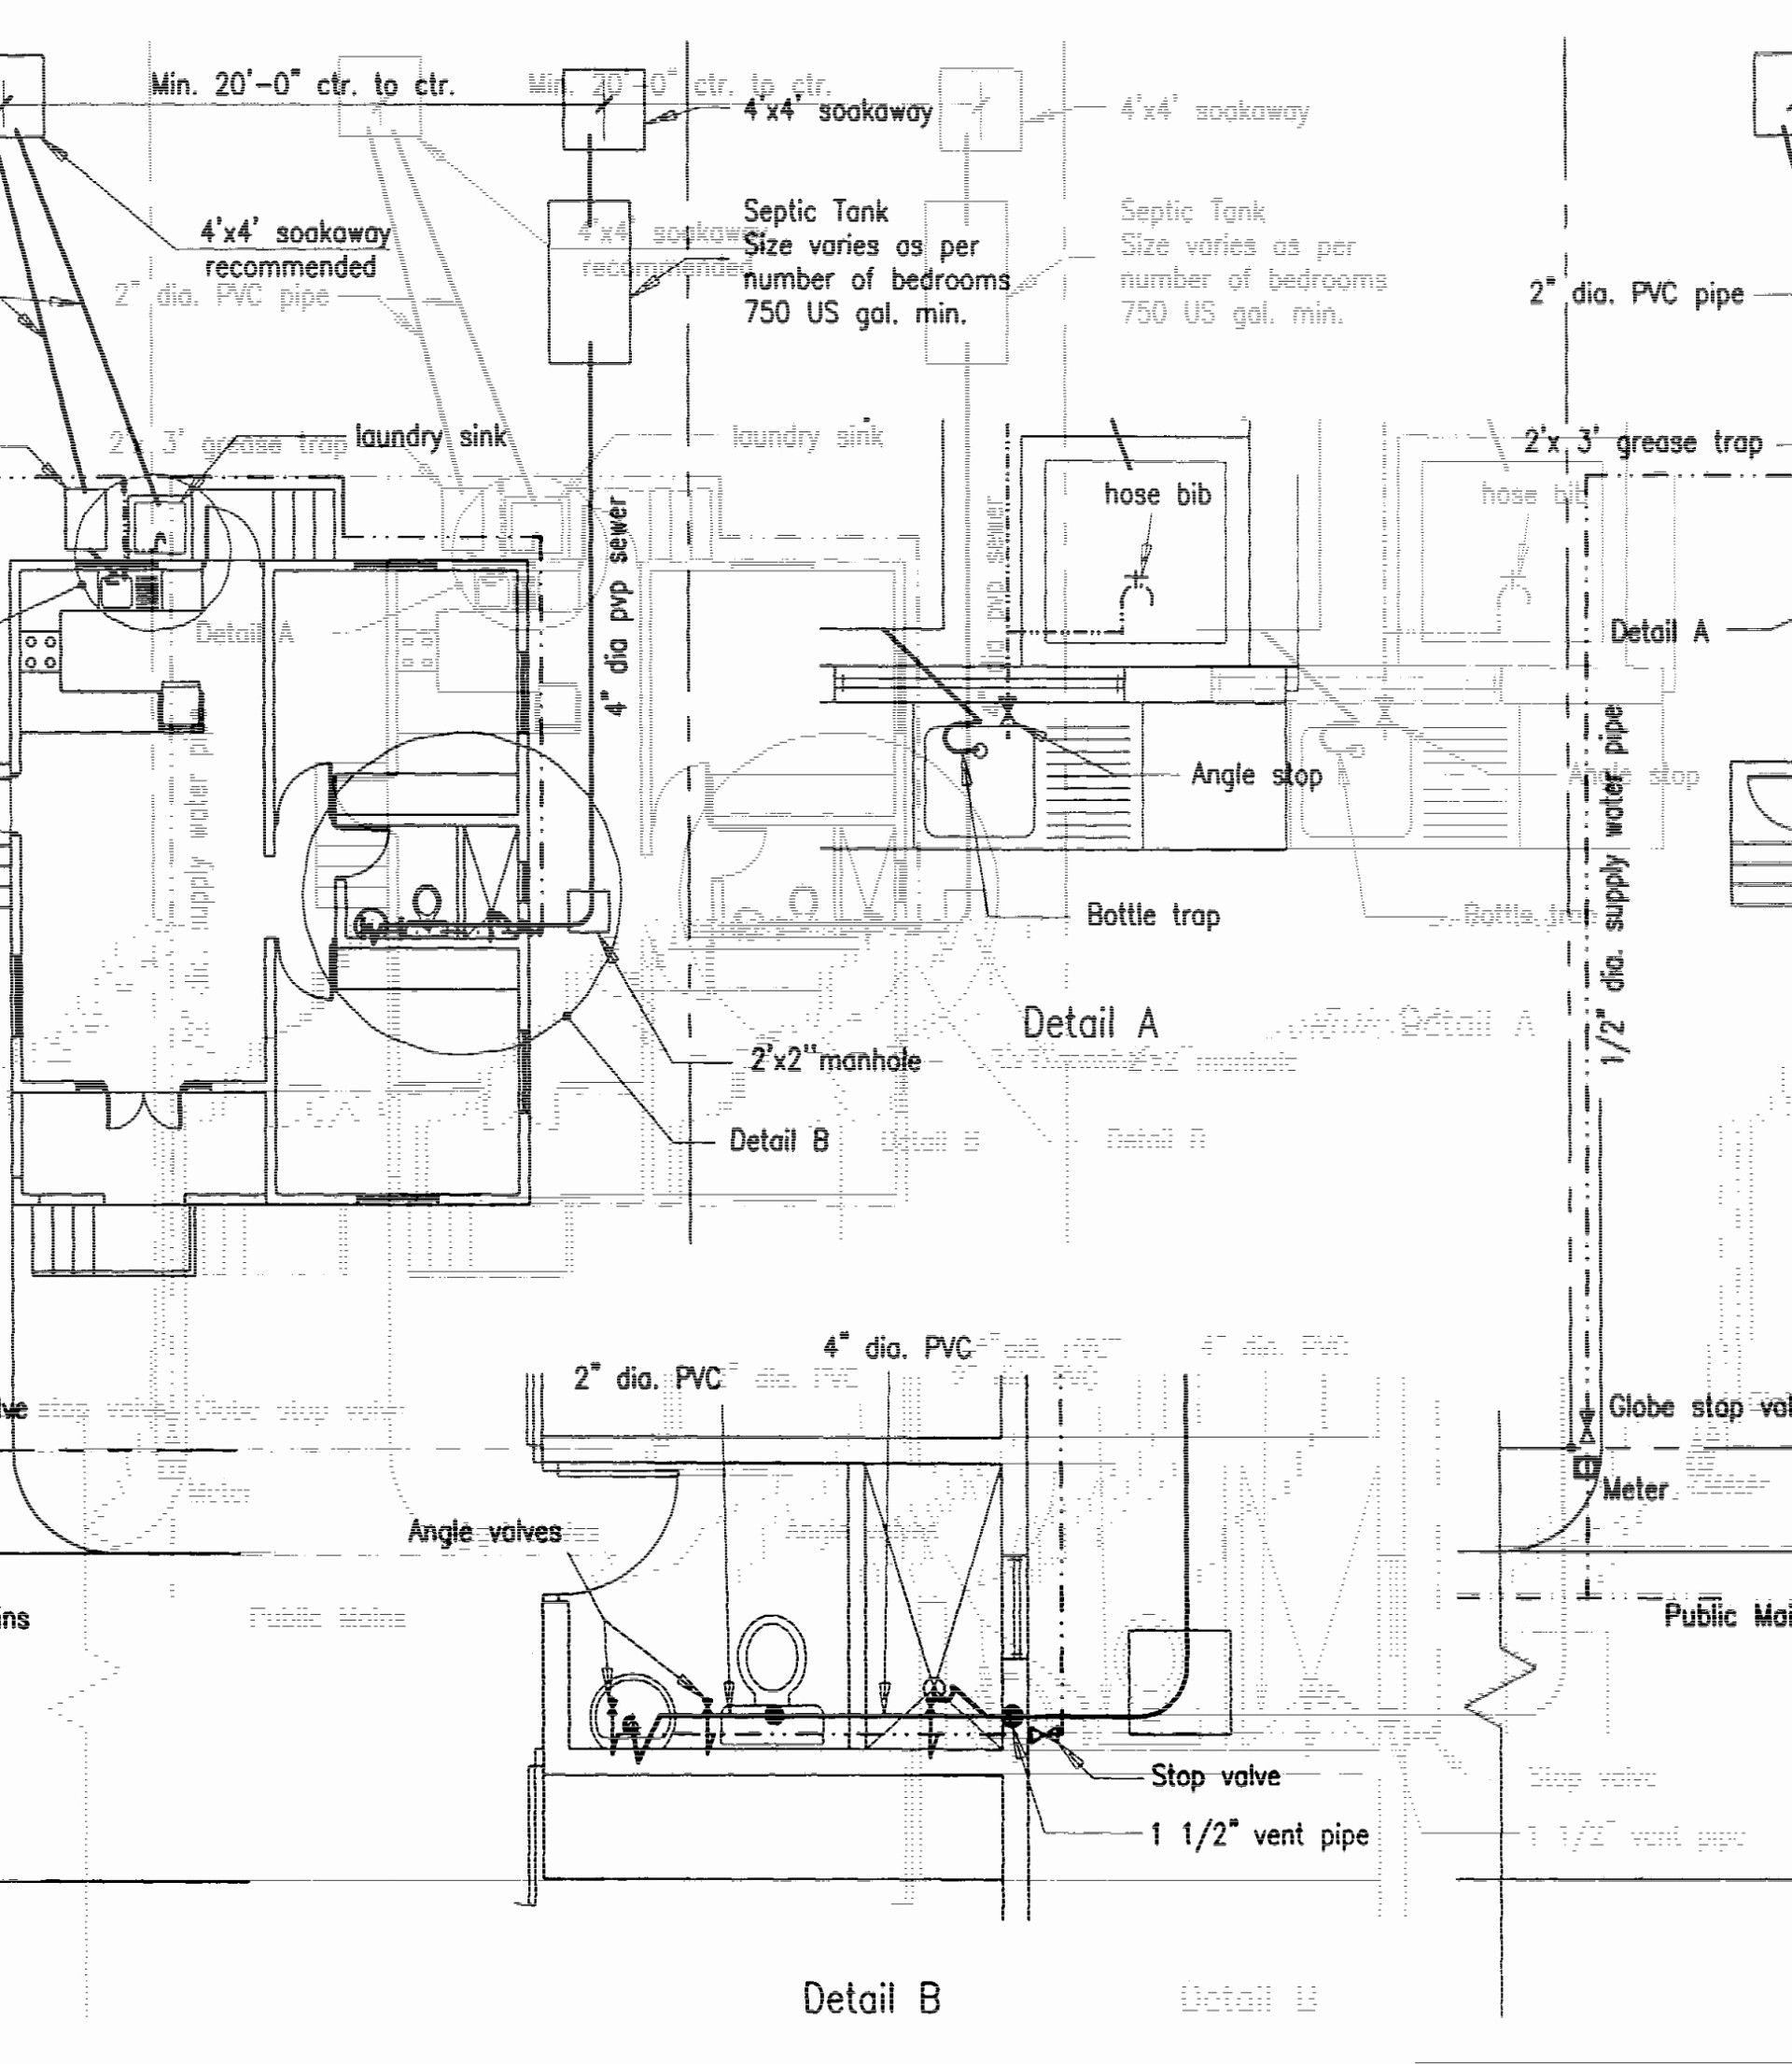 Wiring Diagram Of A Building